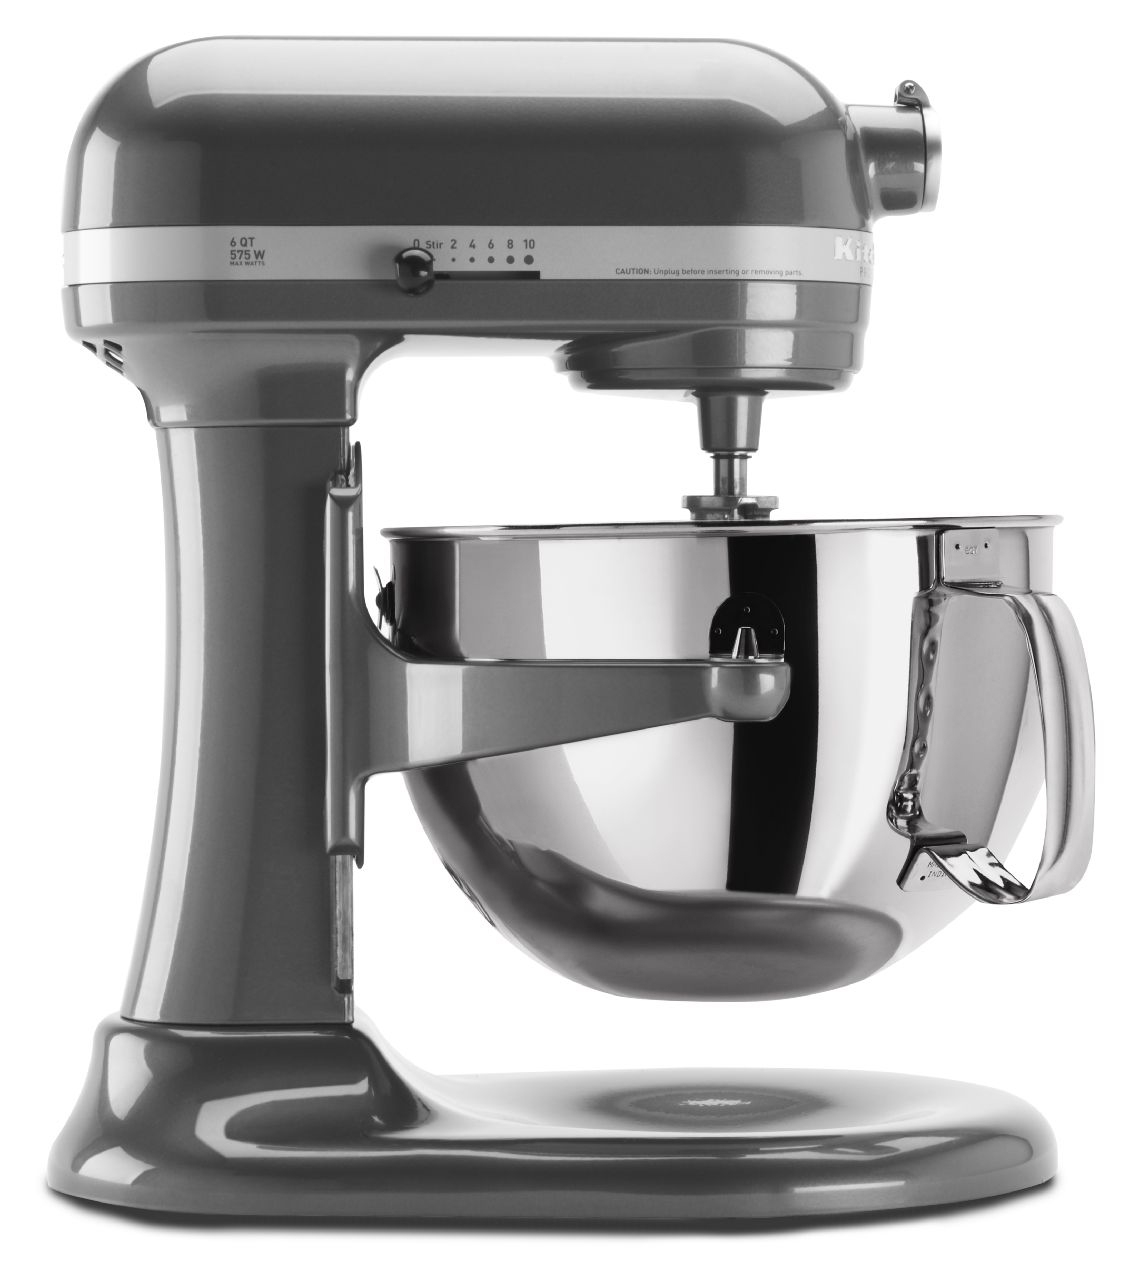 Kitchen Aid Mixer Sale: KitchenAid 600 Series Bowl-Lift Stand Mixer